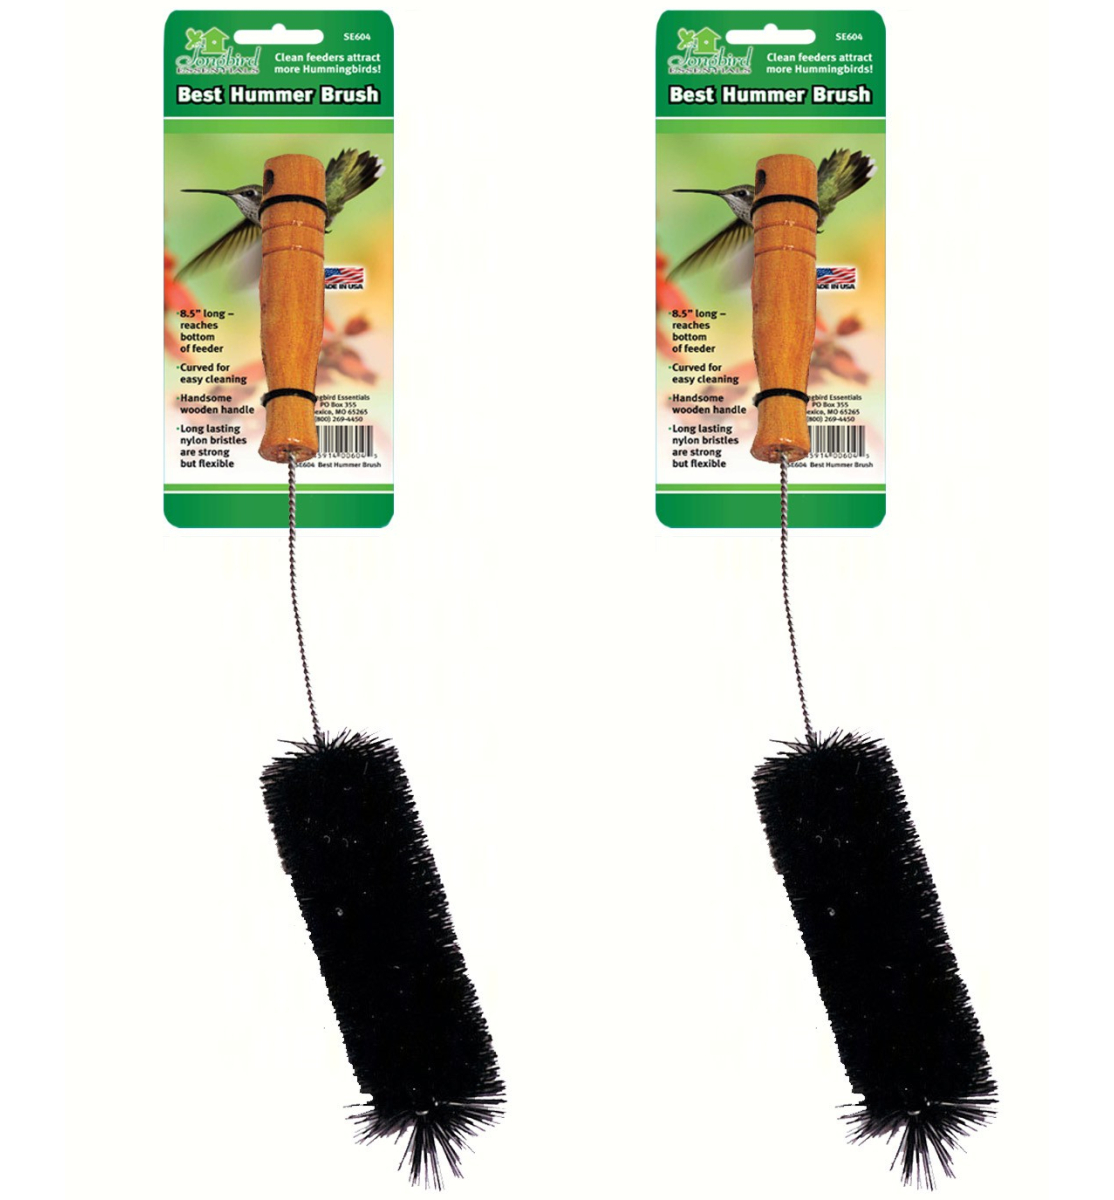 Best Hummer Brush Set of 2